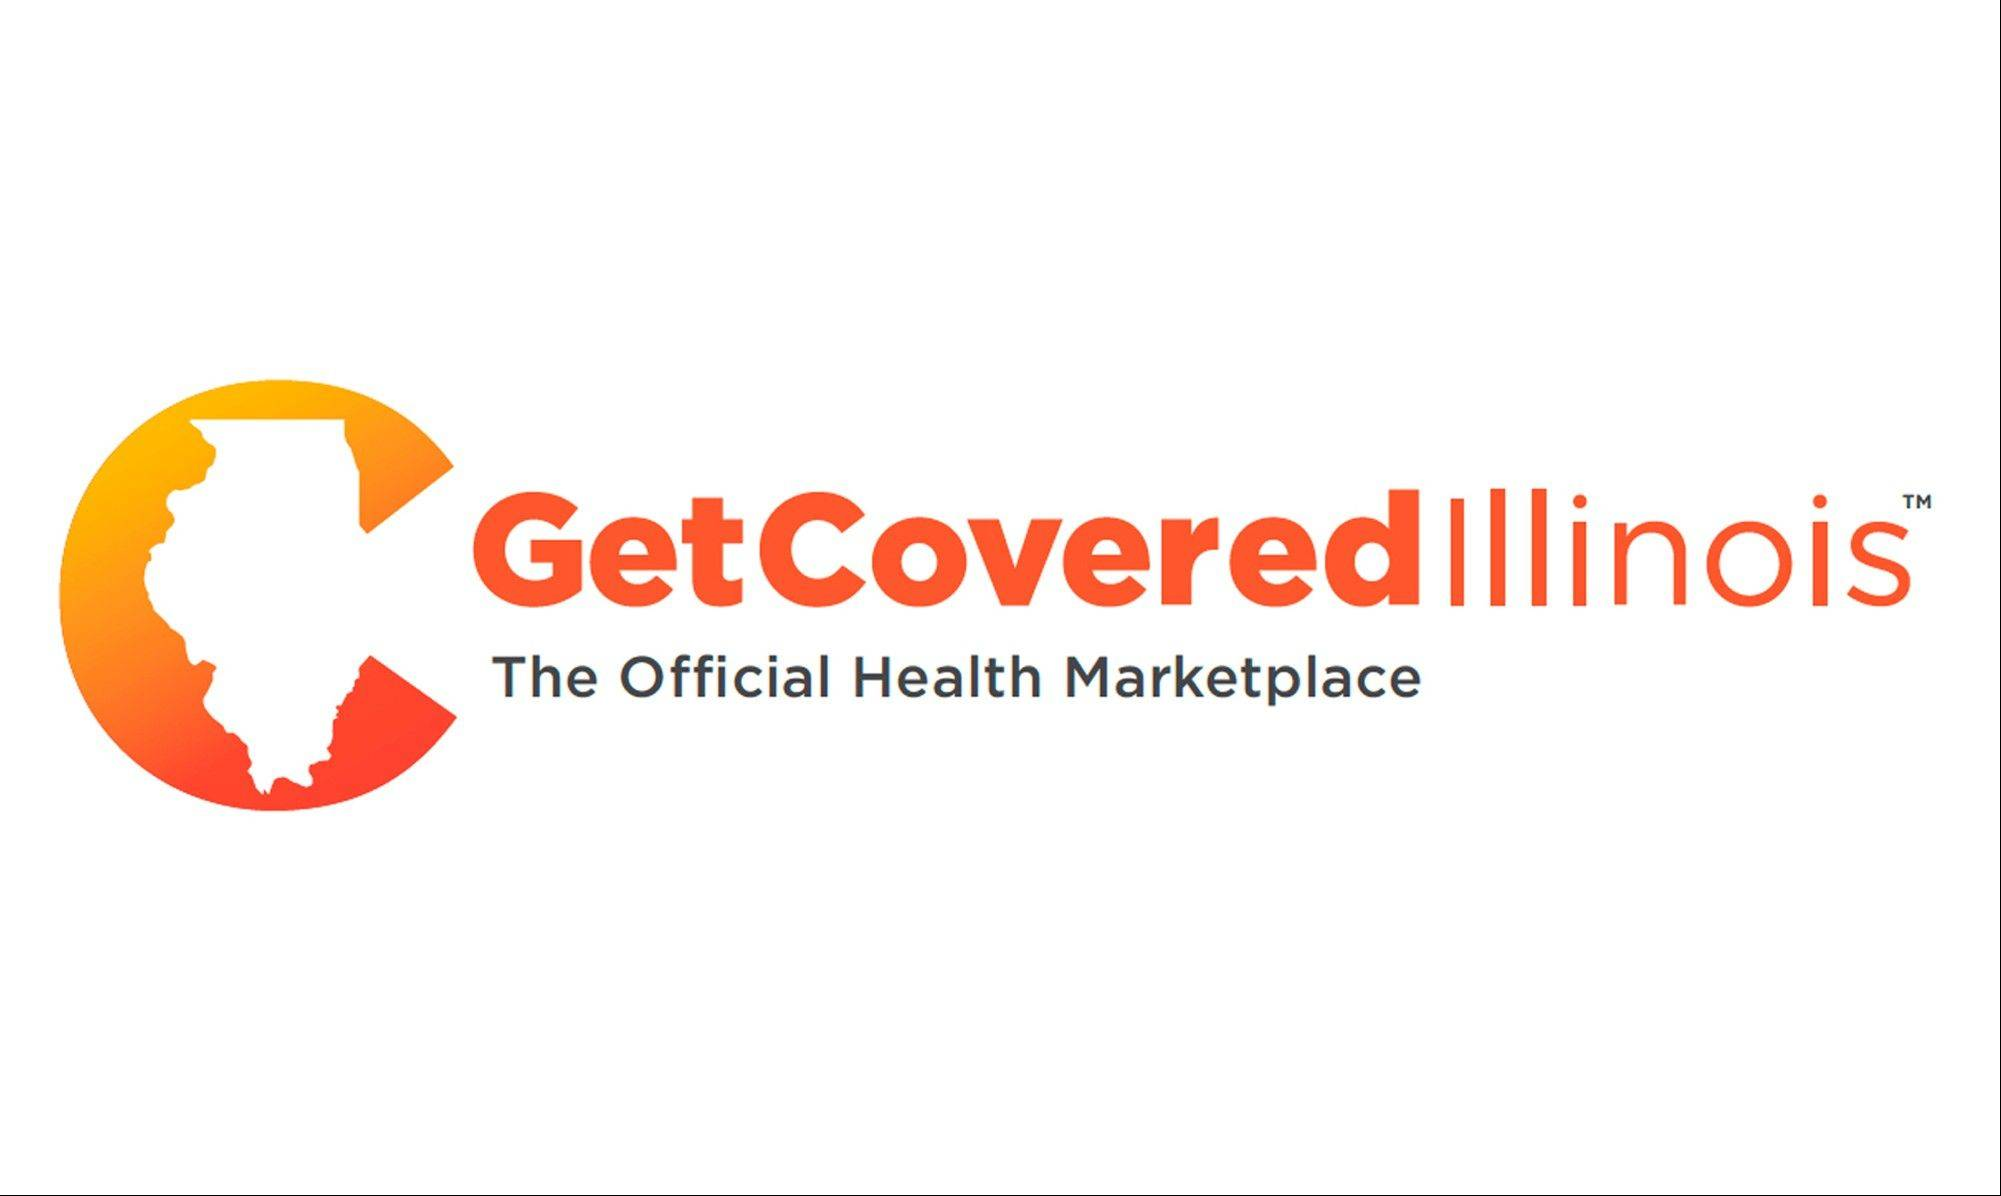 This image provided by Illinois Gov. Pat Quinn's office shows the logo and brand name that officials unveiled Wednesday for the new health insurance marketplace set to open Tuesday. The brand and logo are part of a multimillion-dollar ad campaign beginning Tuesday and building through the fall and winter. Uninsured Illinoisans have until the end of March to buy health insurance through Get Covered Illinois.